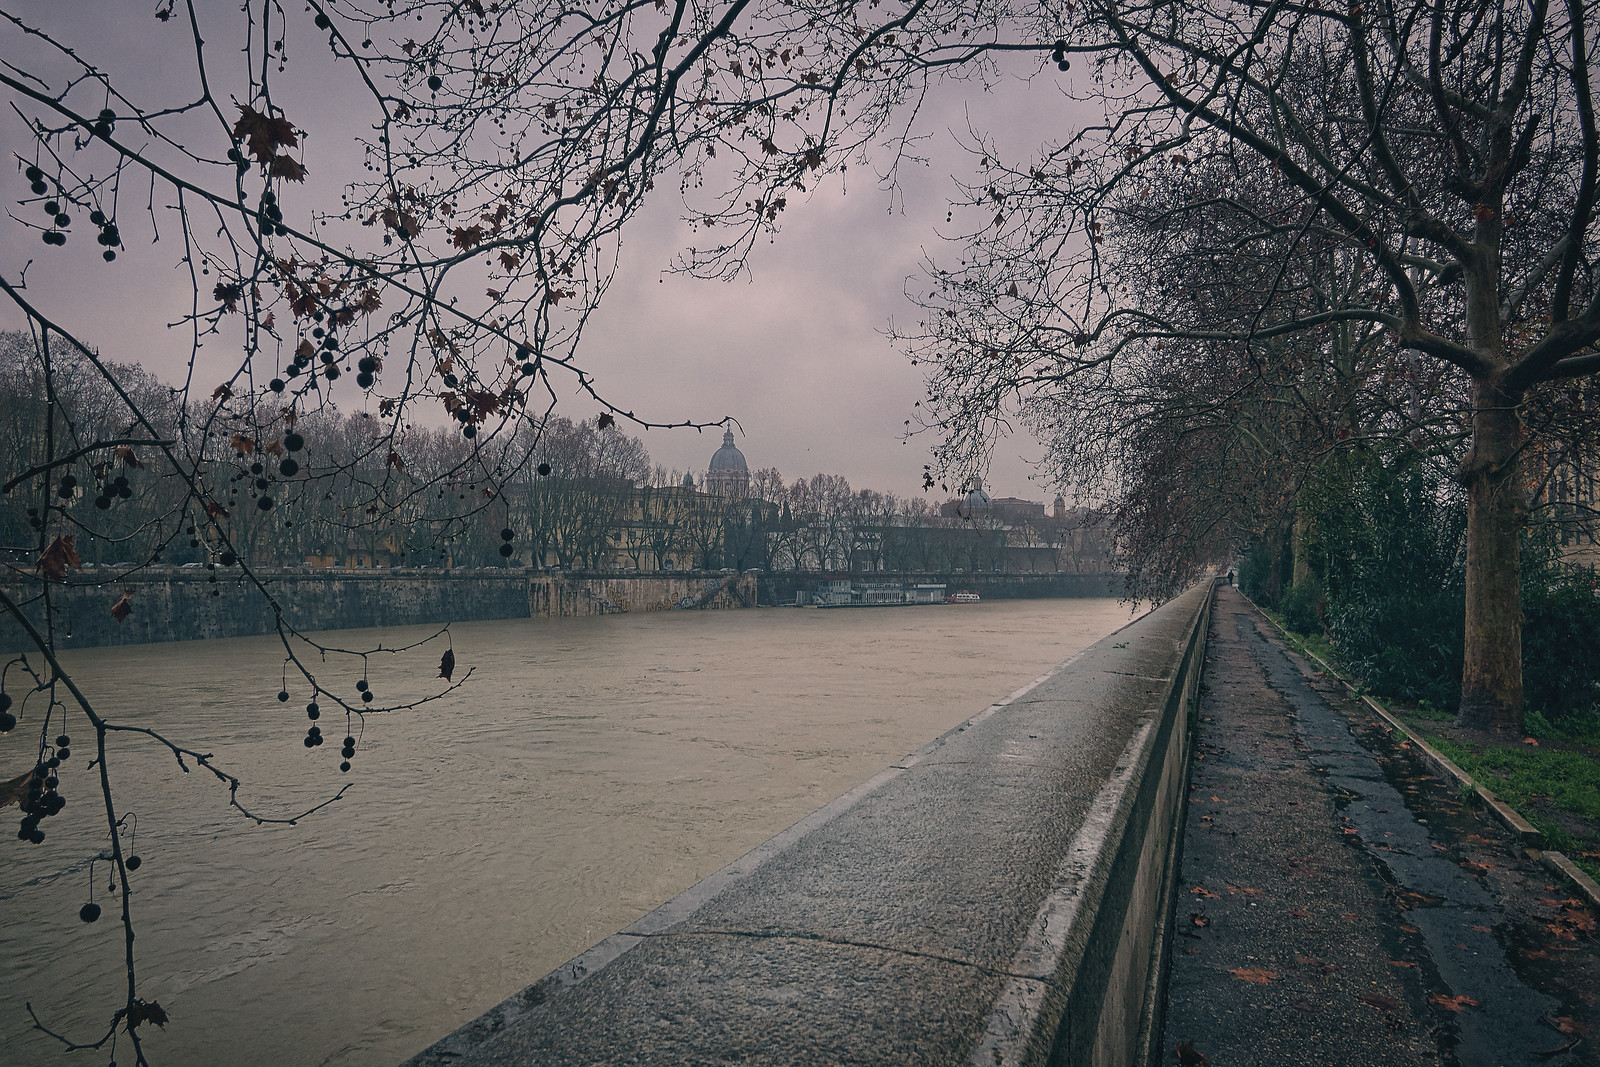 Flooding at the Tiber River Rome Italy